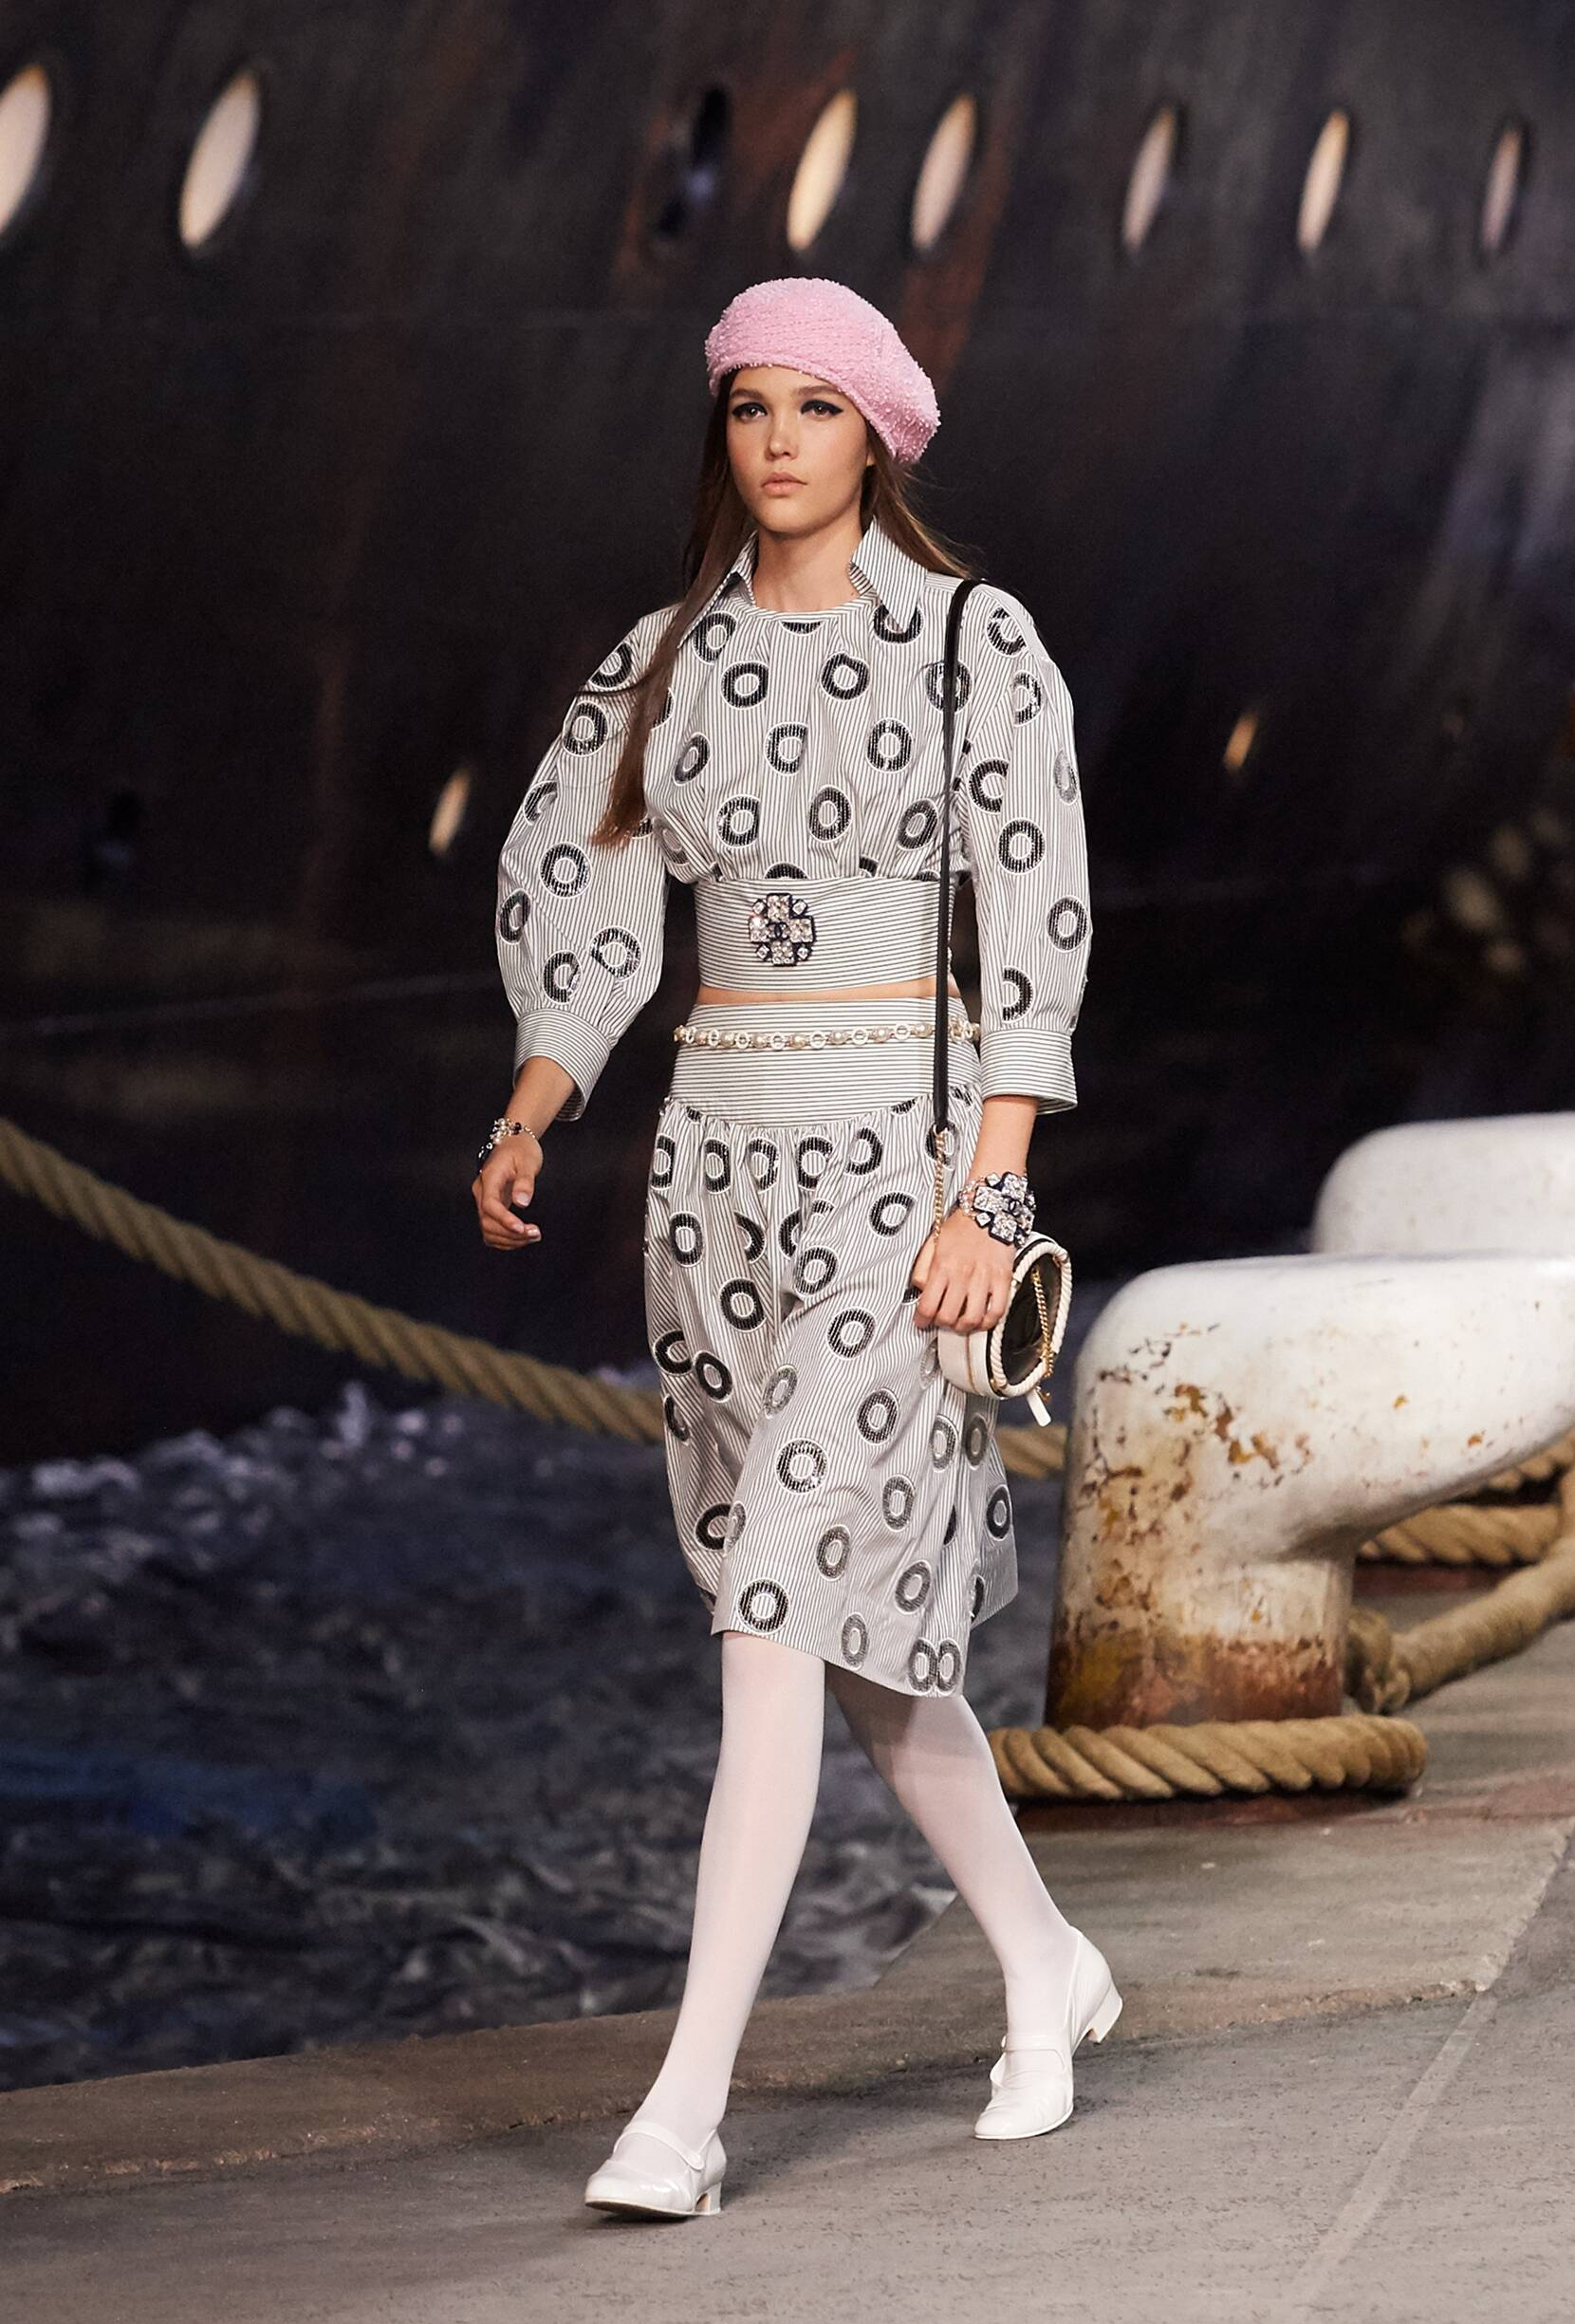 Chanel Cruise Collection 2018-19 Look 17 Paris